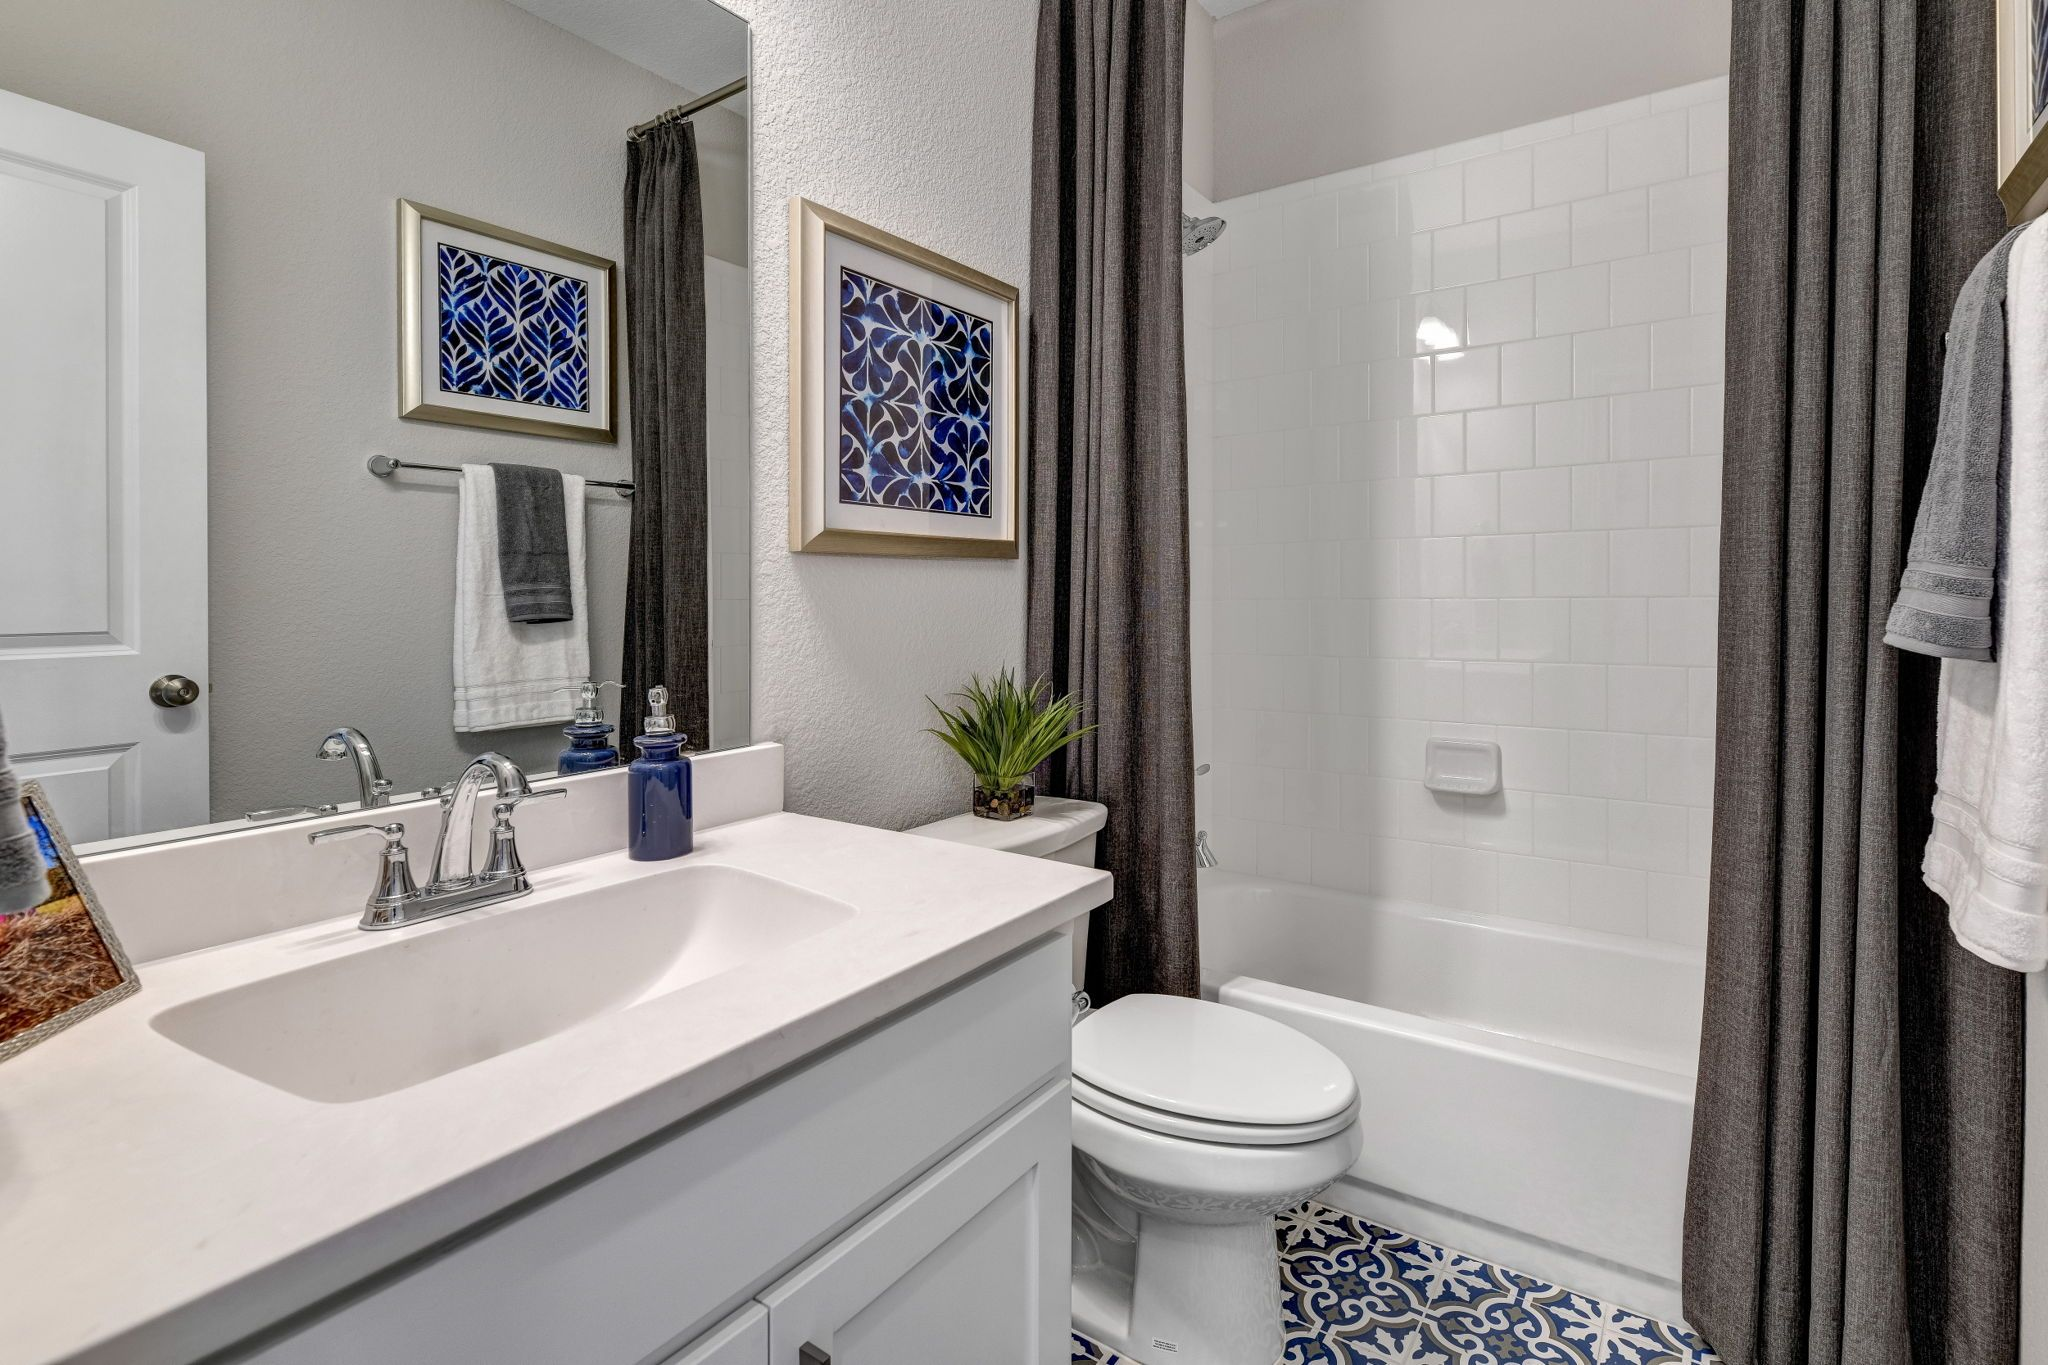 Bathroom featured in the Plan 1525 By American Legend Homes in Dallas, TX